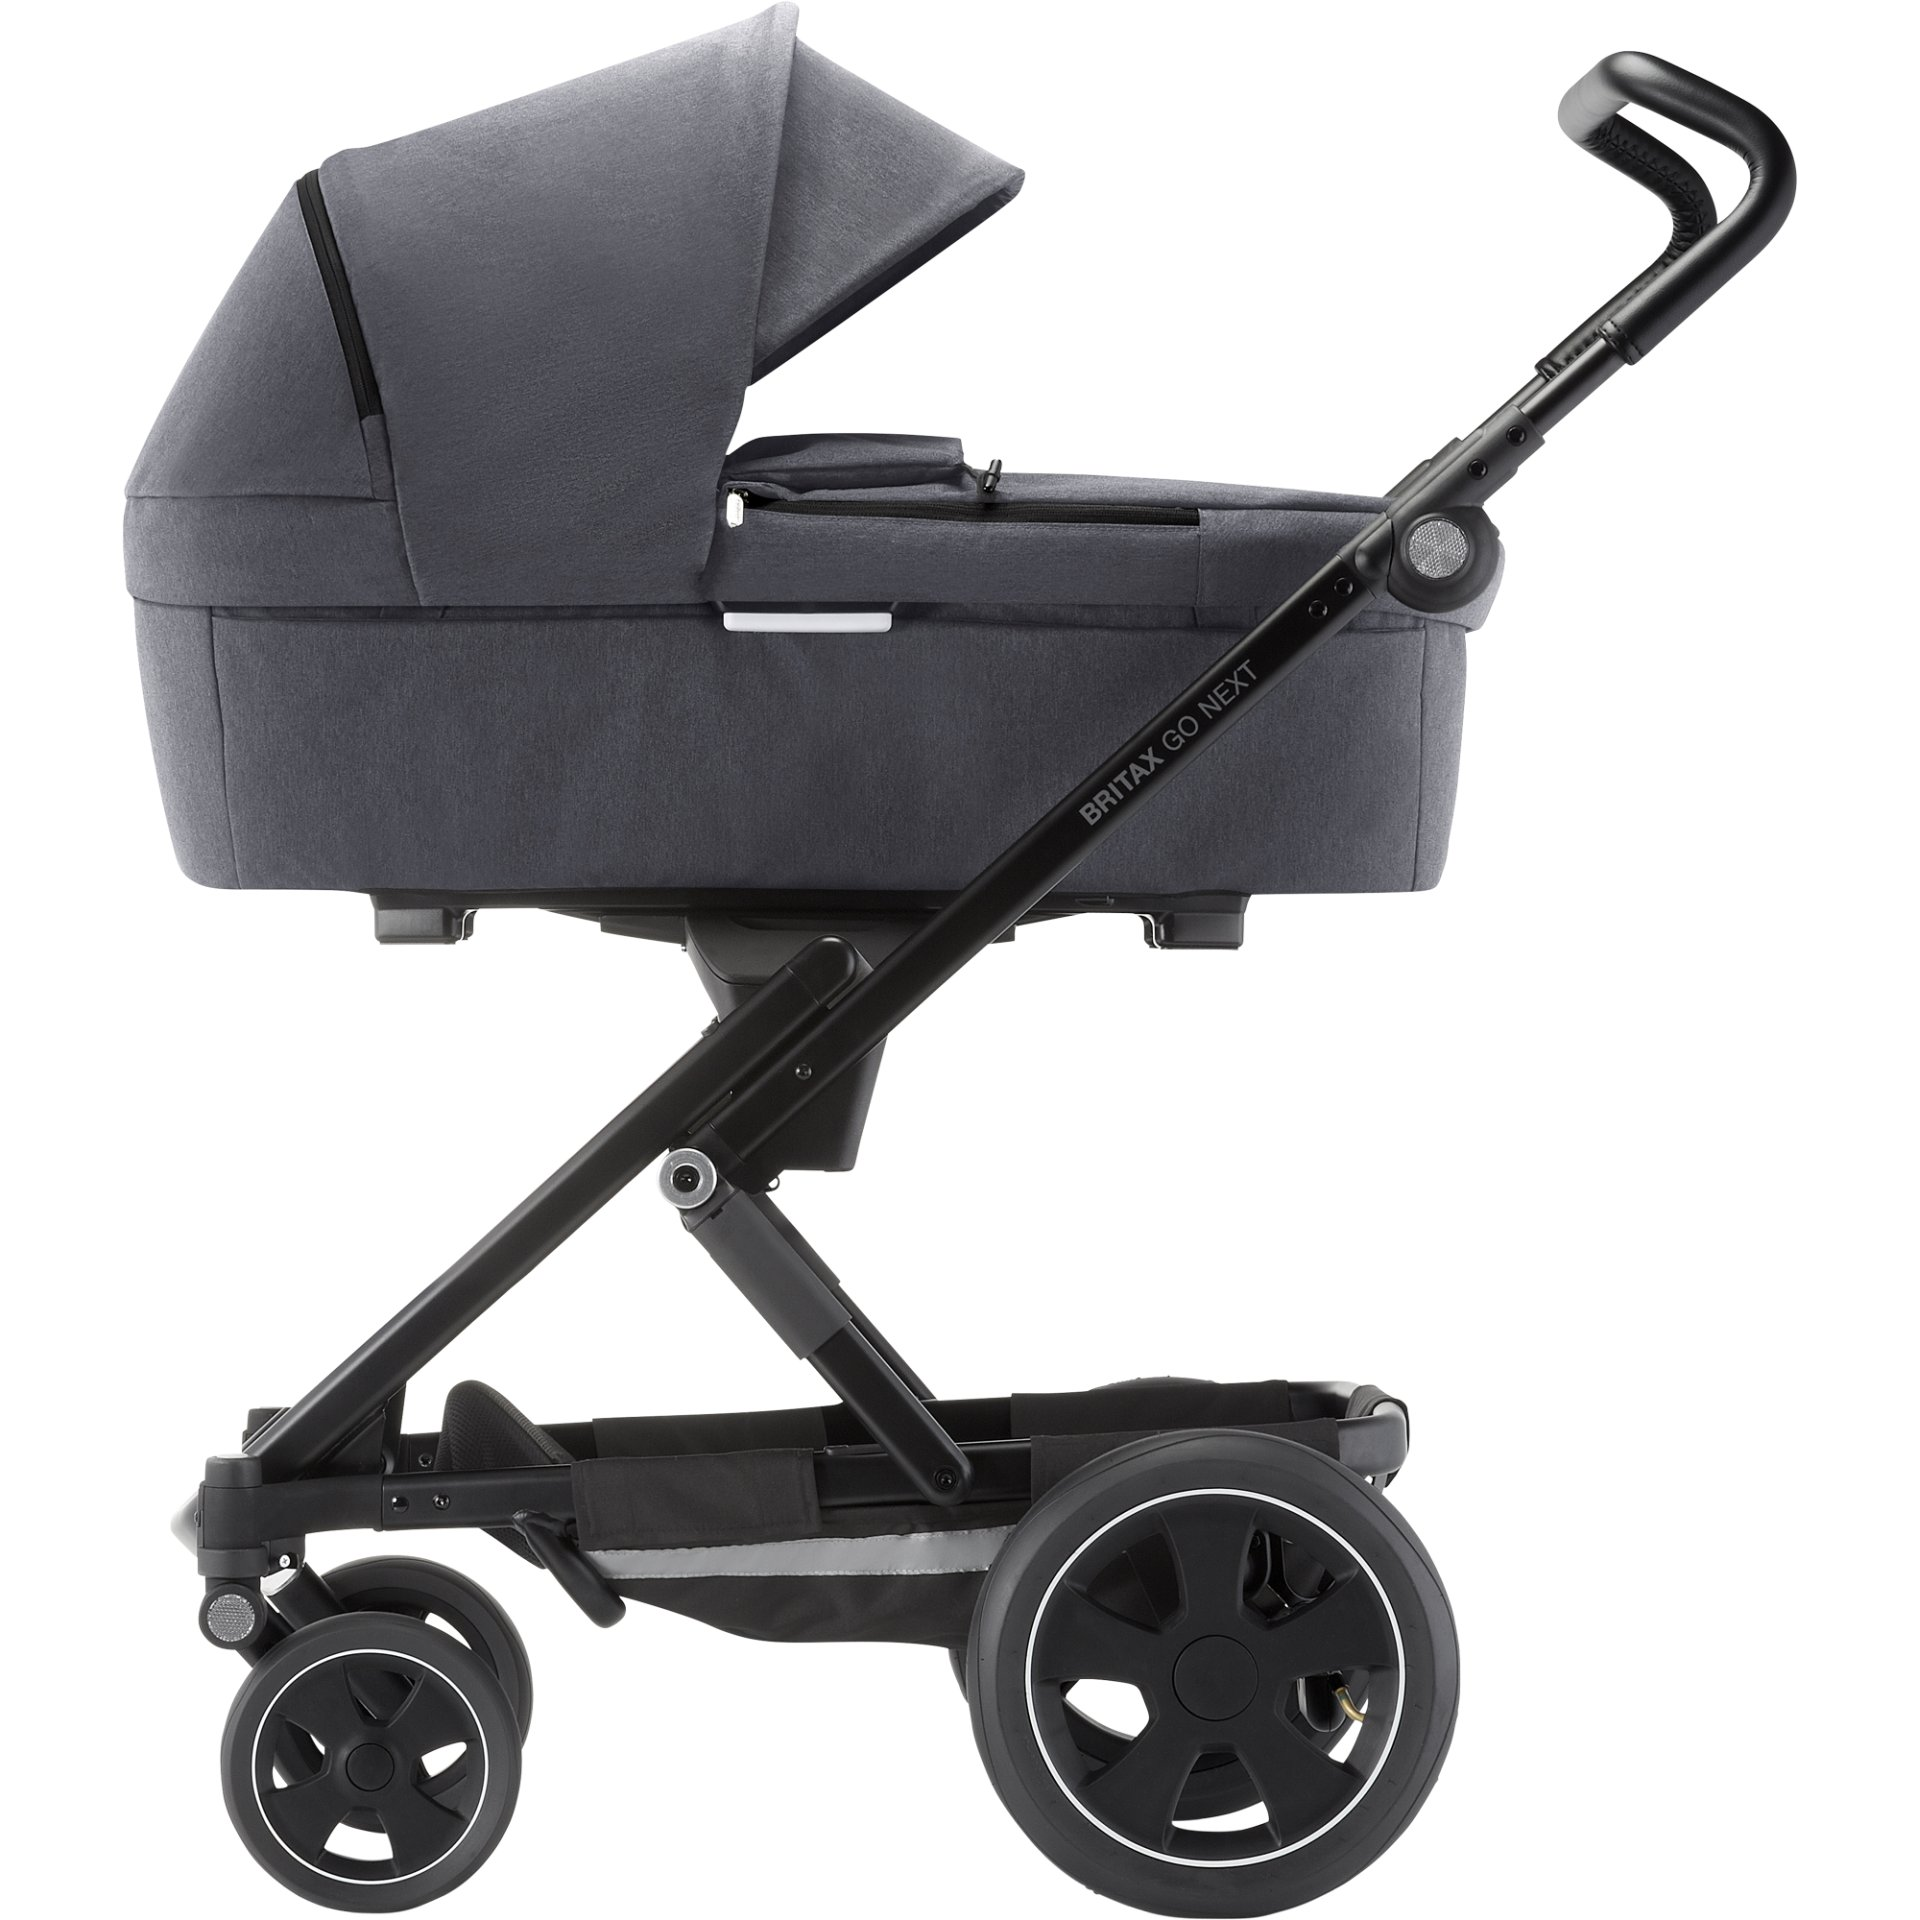 britax r mer stroller go next 2 2019 graphite melange buy at kidsroom strollers. Black Bedroom Furniture Sets. Home Design Ideas